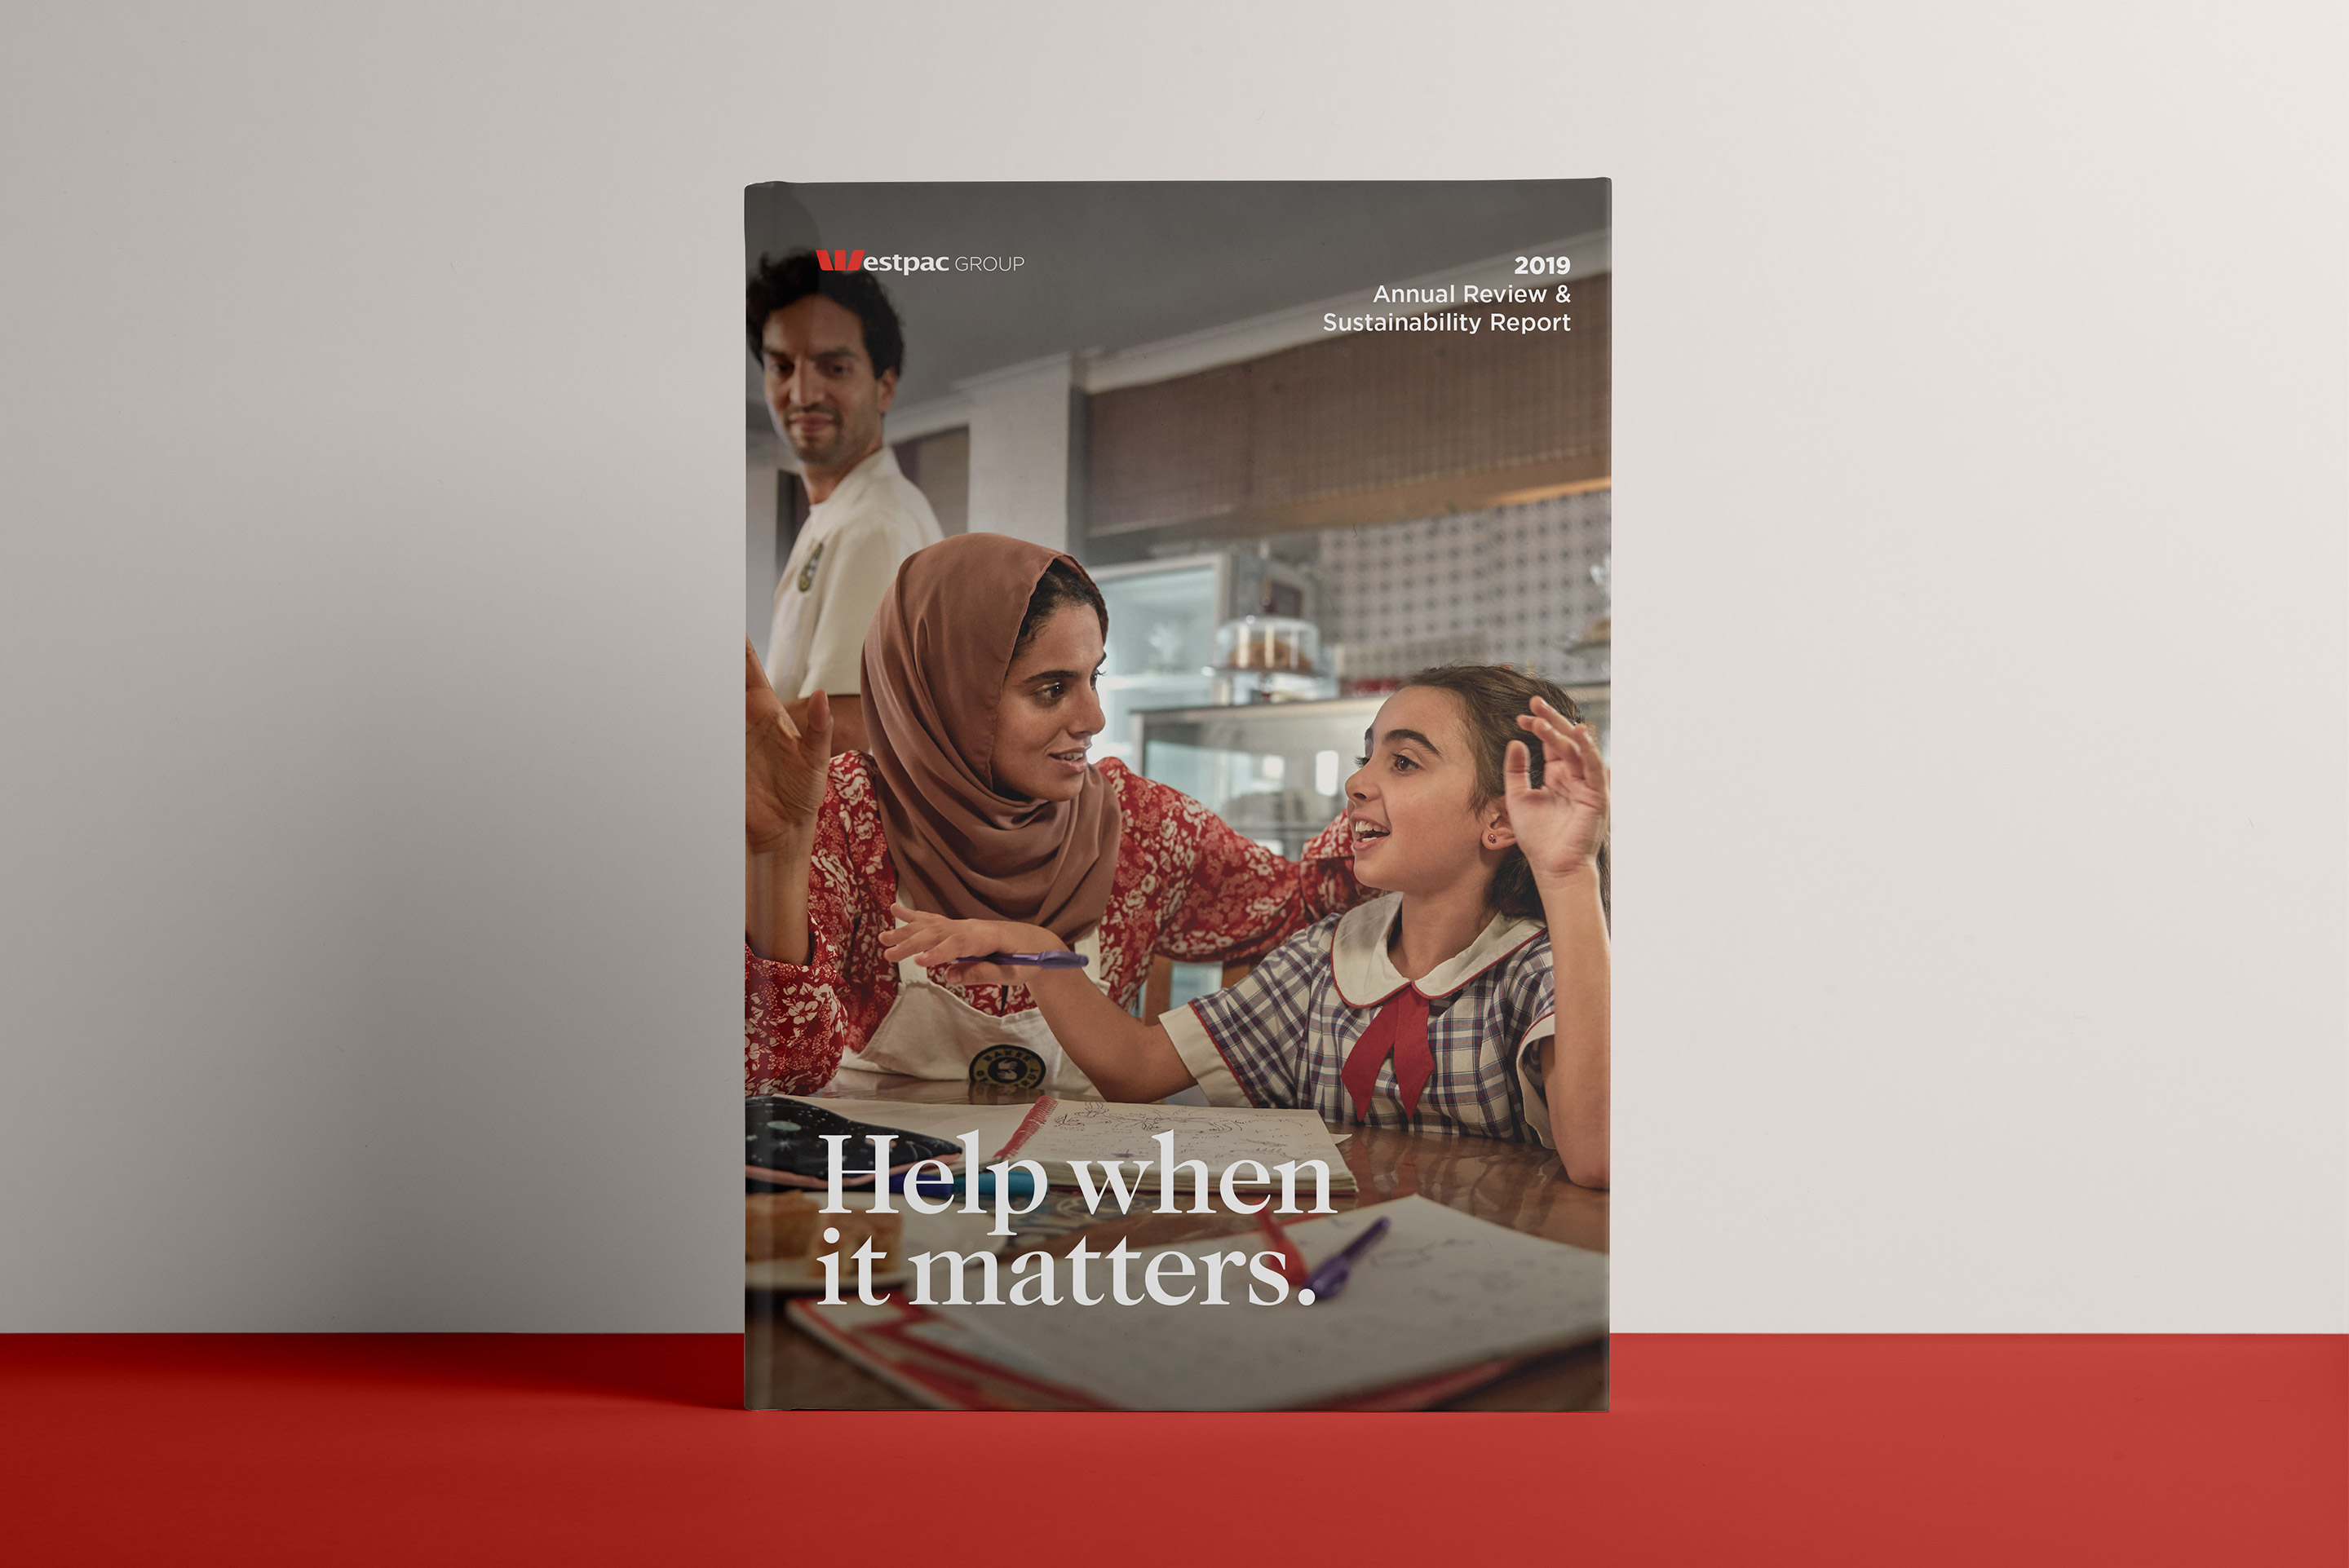 Westpac 2019 Annual Report. Front cover design.